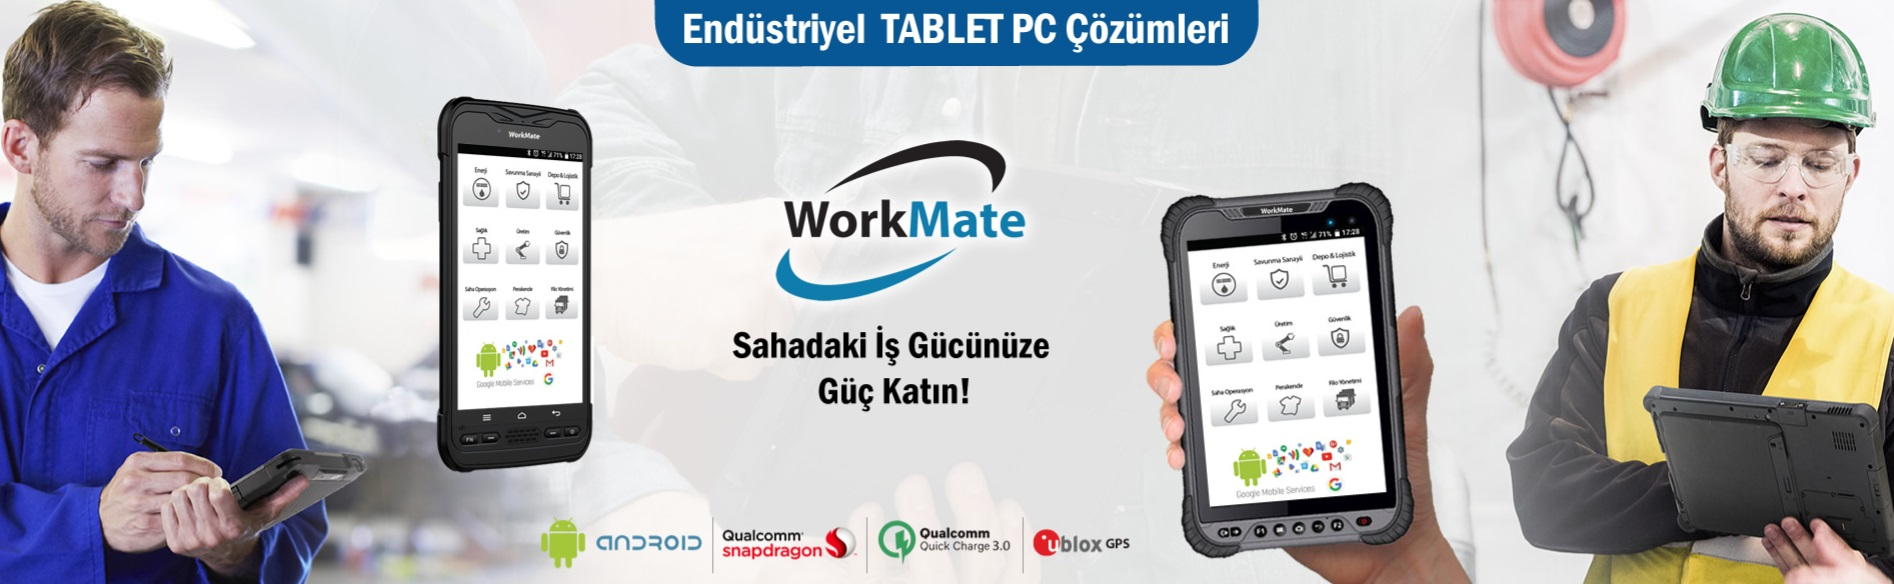 Workmate Tablet